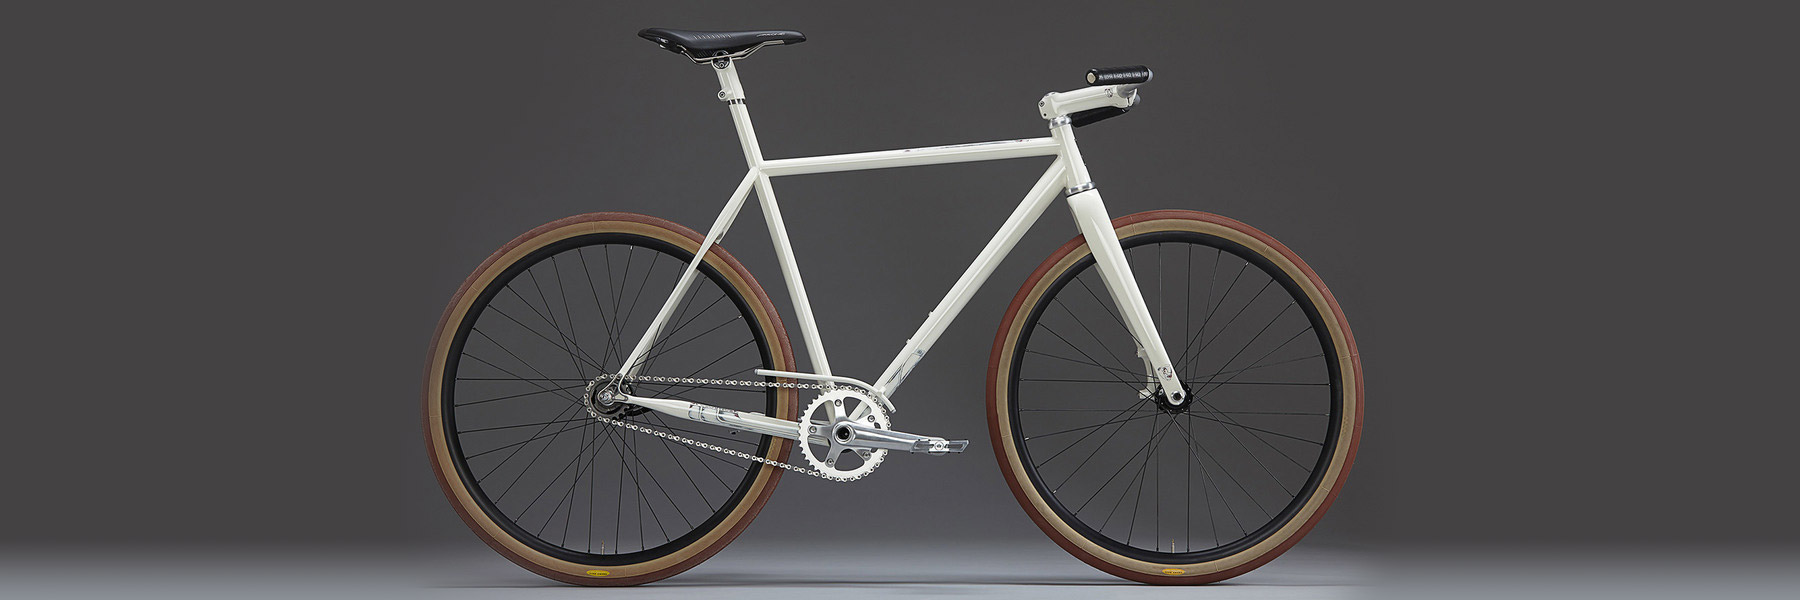 fixie_speedvagen_home